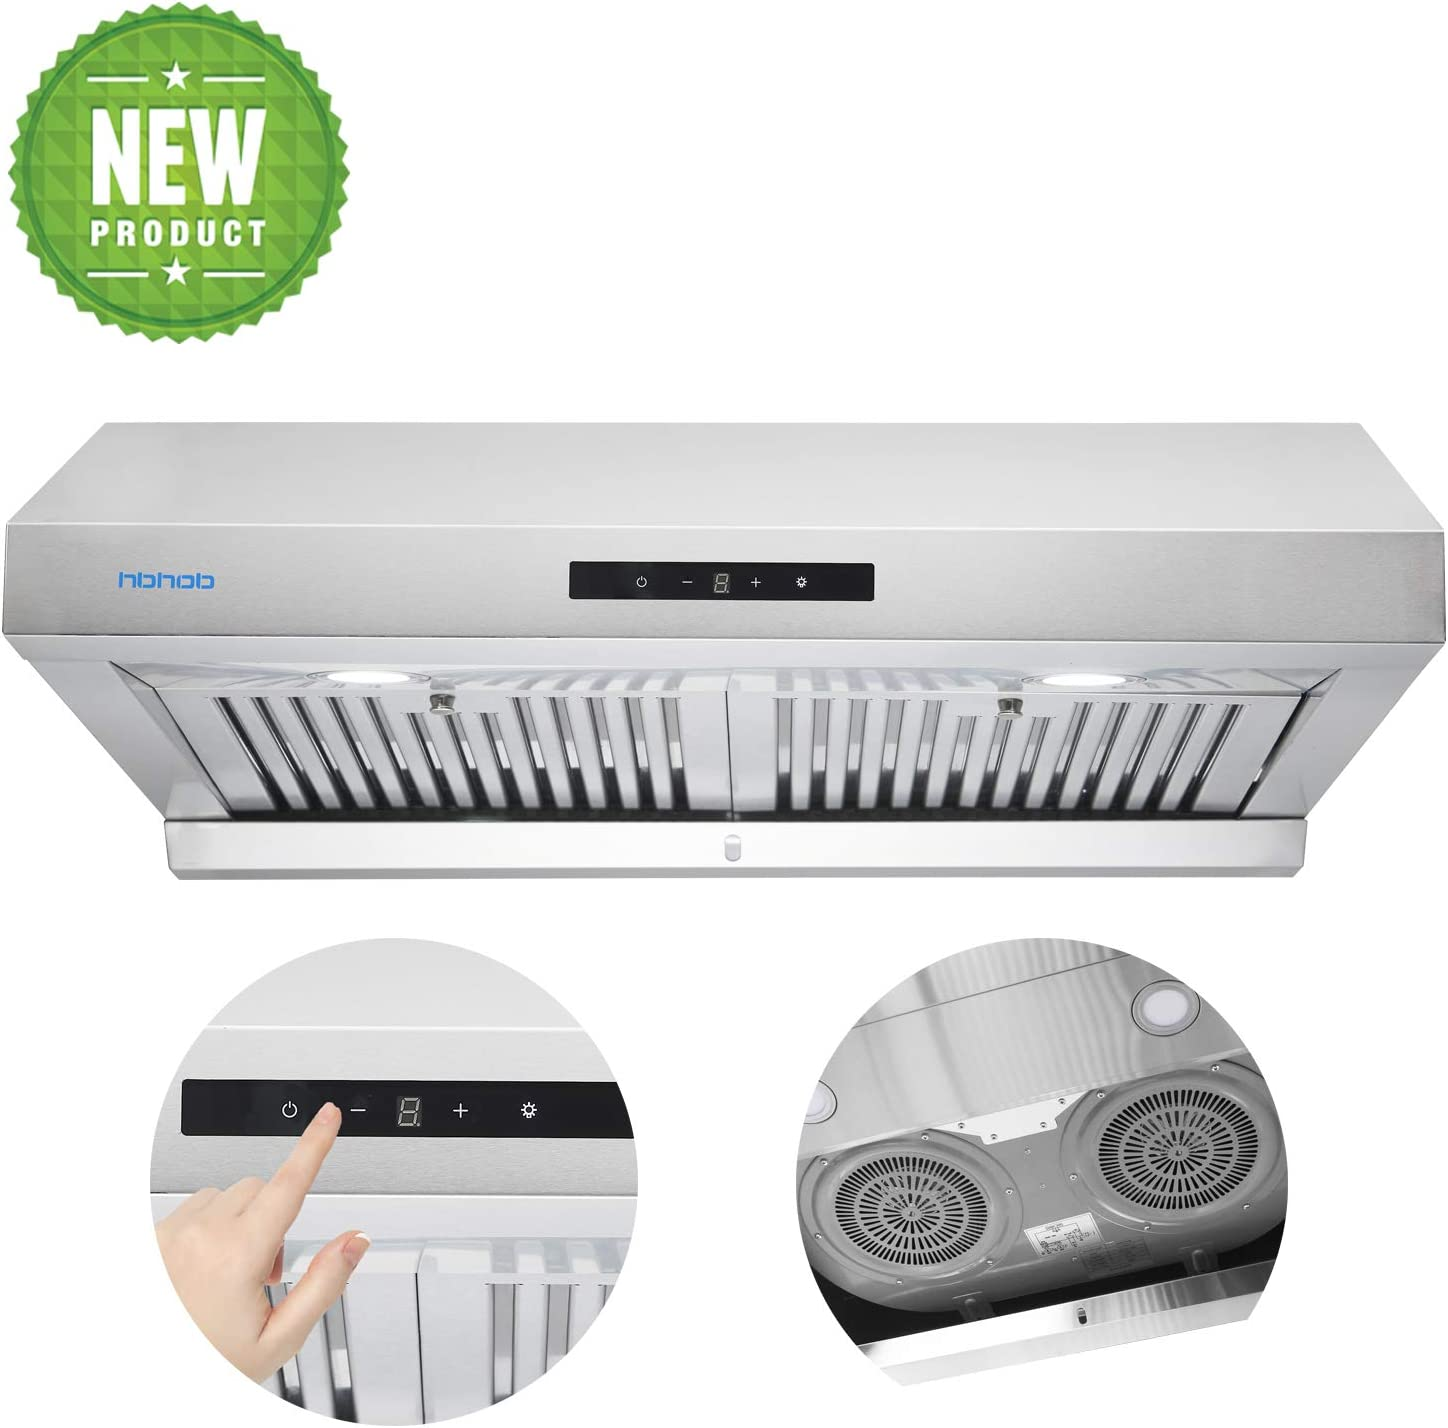 30-in Under-Cabinet Stainless Steel Range Hood, Touch Screen,3 Speed Exhaust, With LED Light, Super Suction 950 CFM, Reusable Filter (Stainless Steel), Kitchen Stove Vent